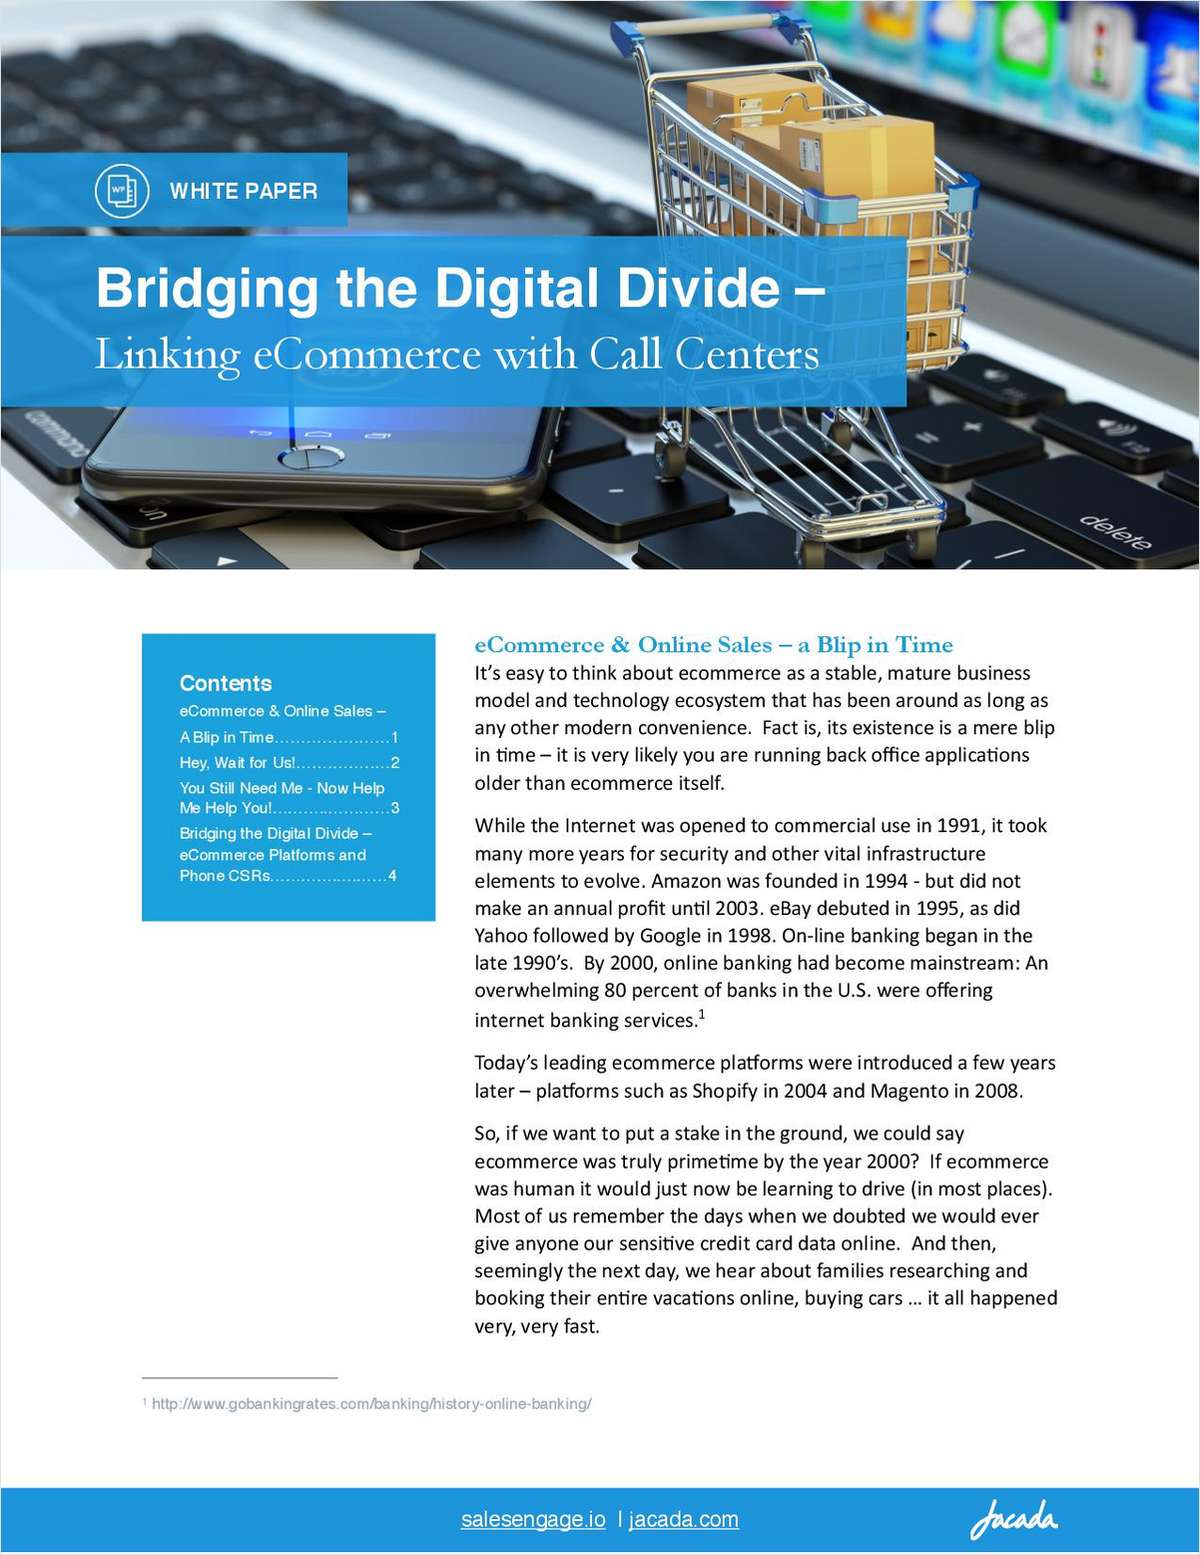 Bridging the Digital Divide - Linking eCommerce with Call Centers